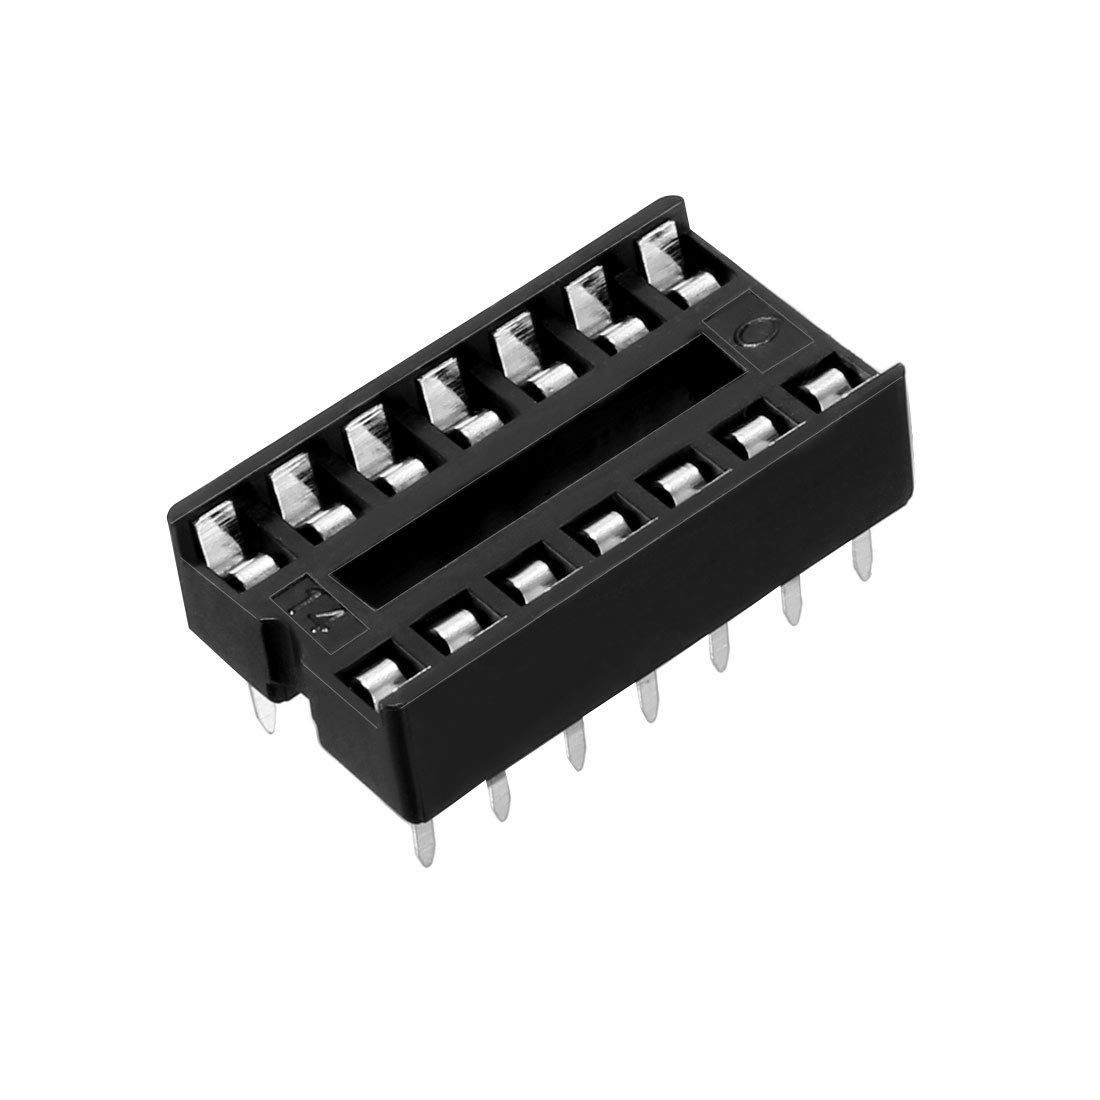 uxcell 25pcs DIP IC Chip Socket 2.54mm Sale special Fashionable price Pitch Adaptor Type Solder